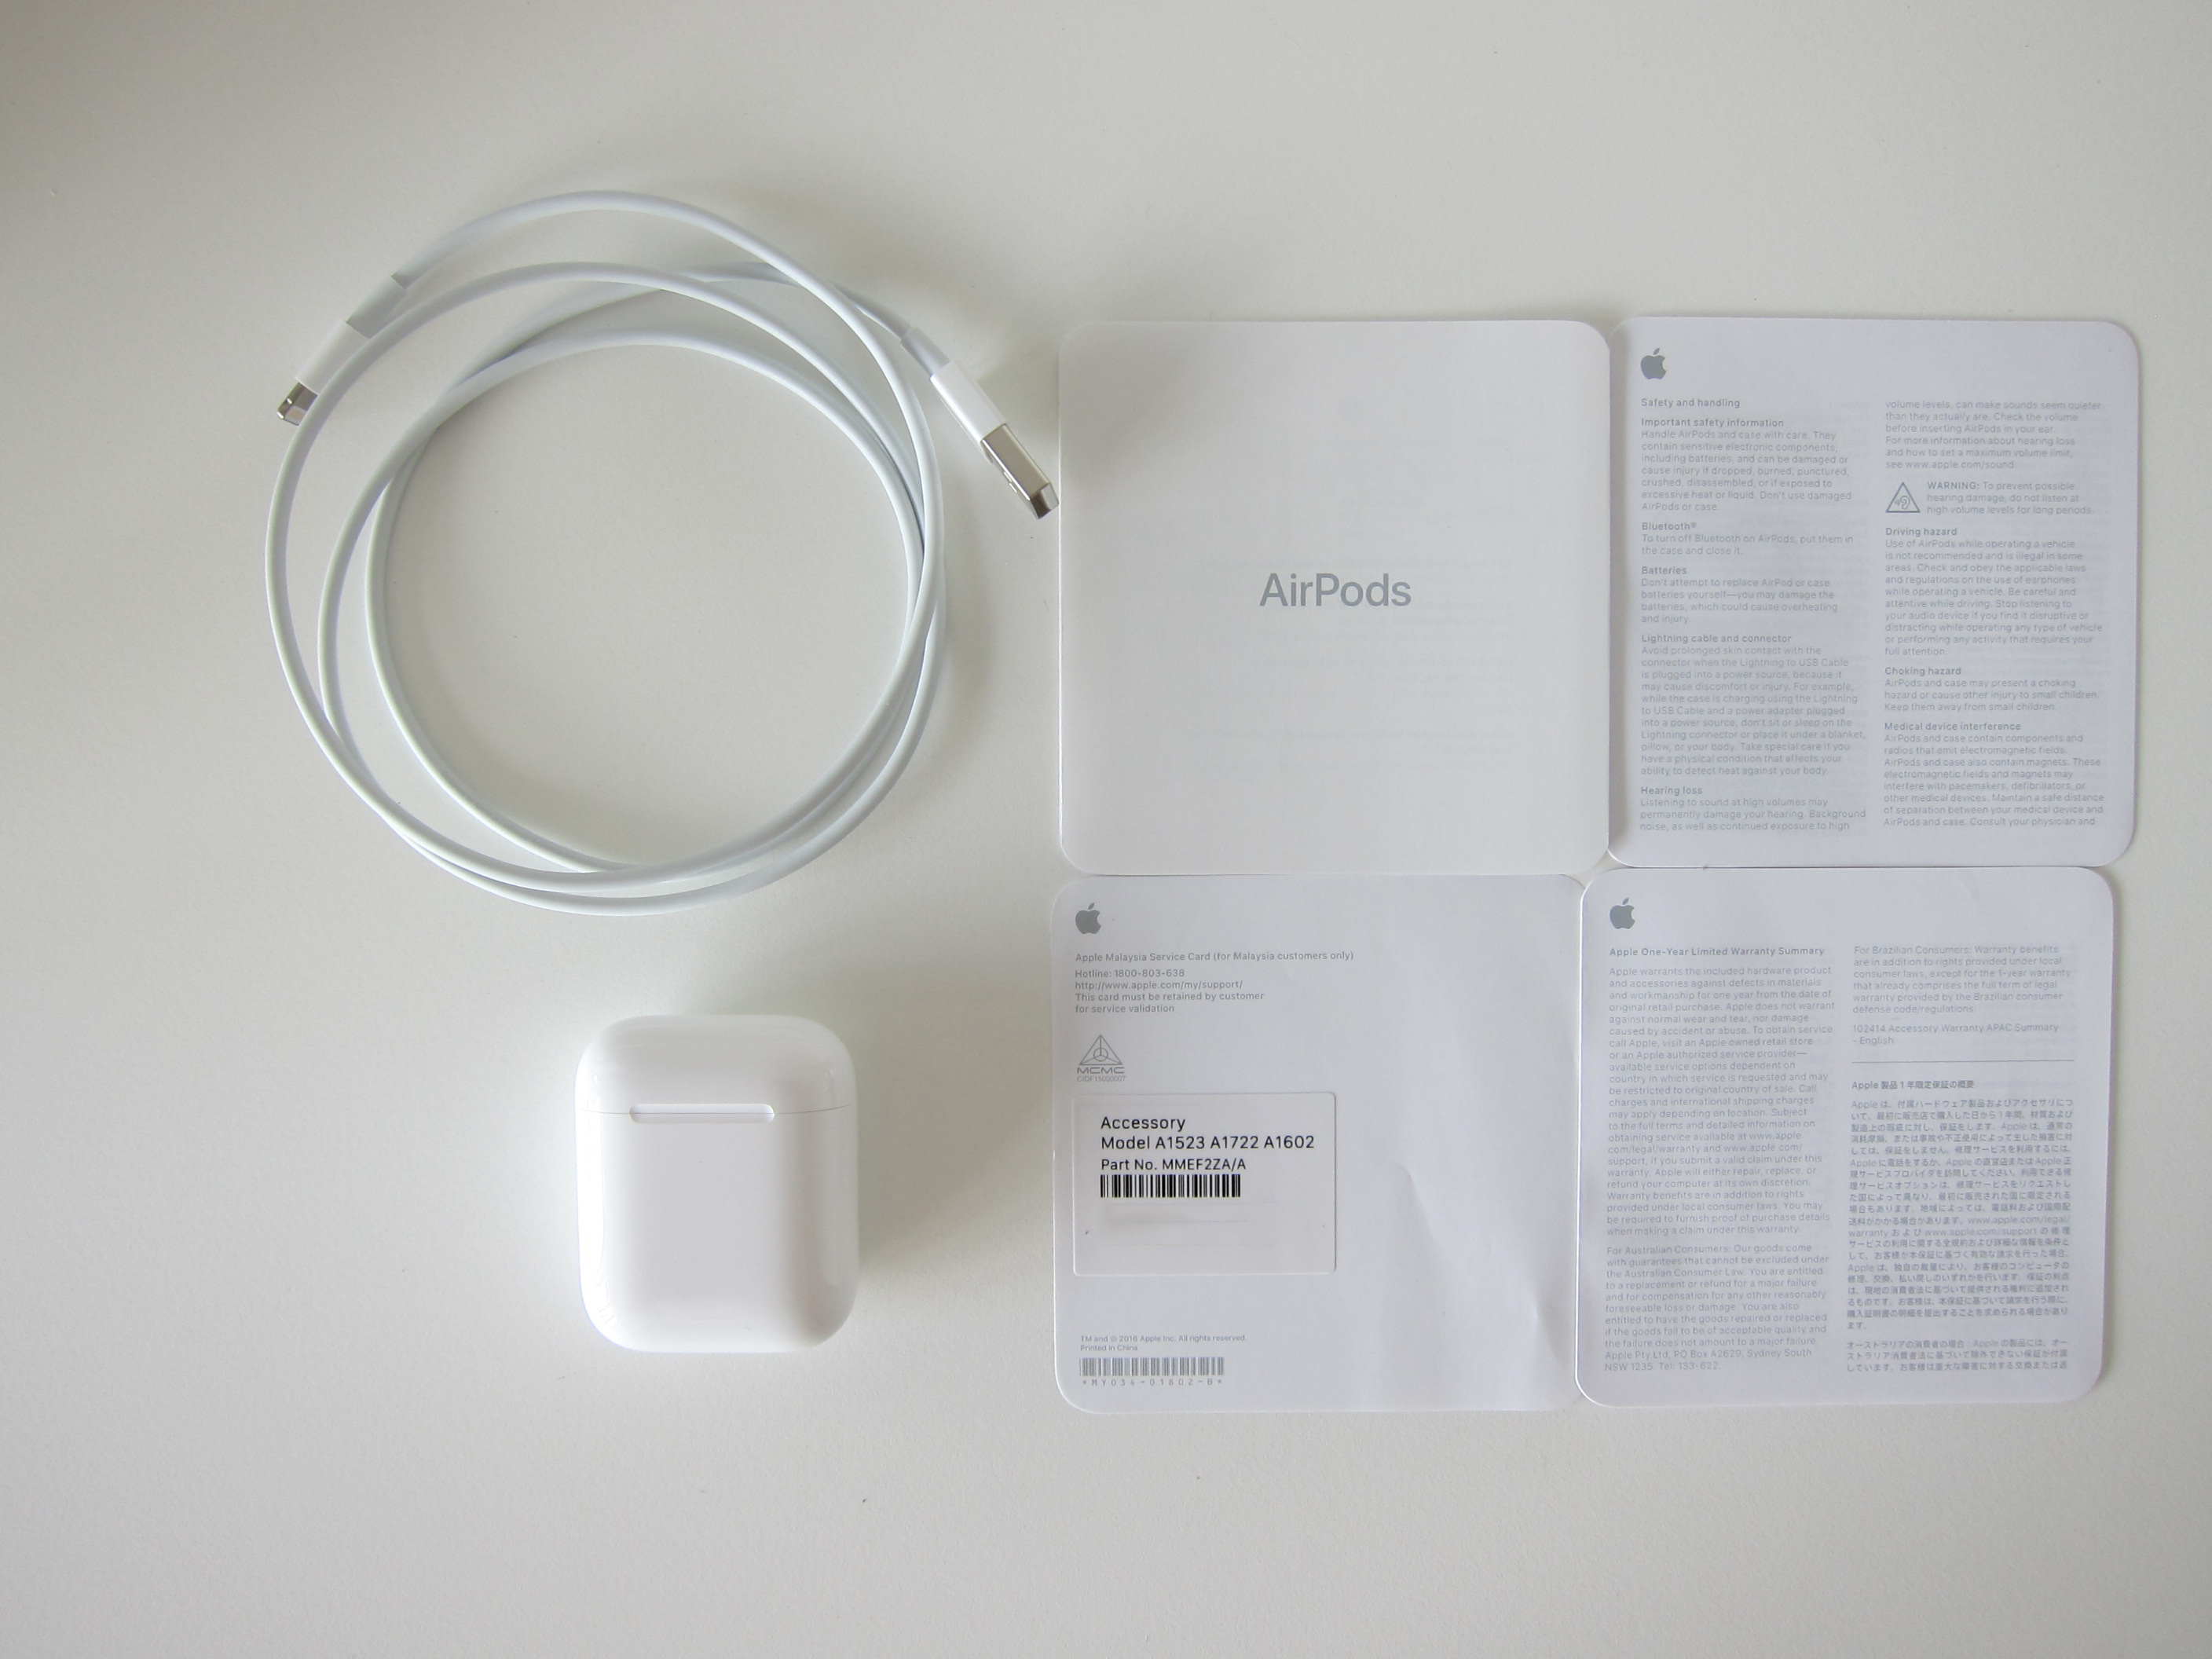 Apple AirPods      Blog   lesterchan net Apple AirPods   Box Contents